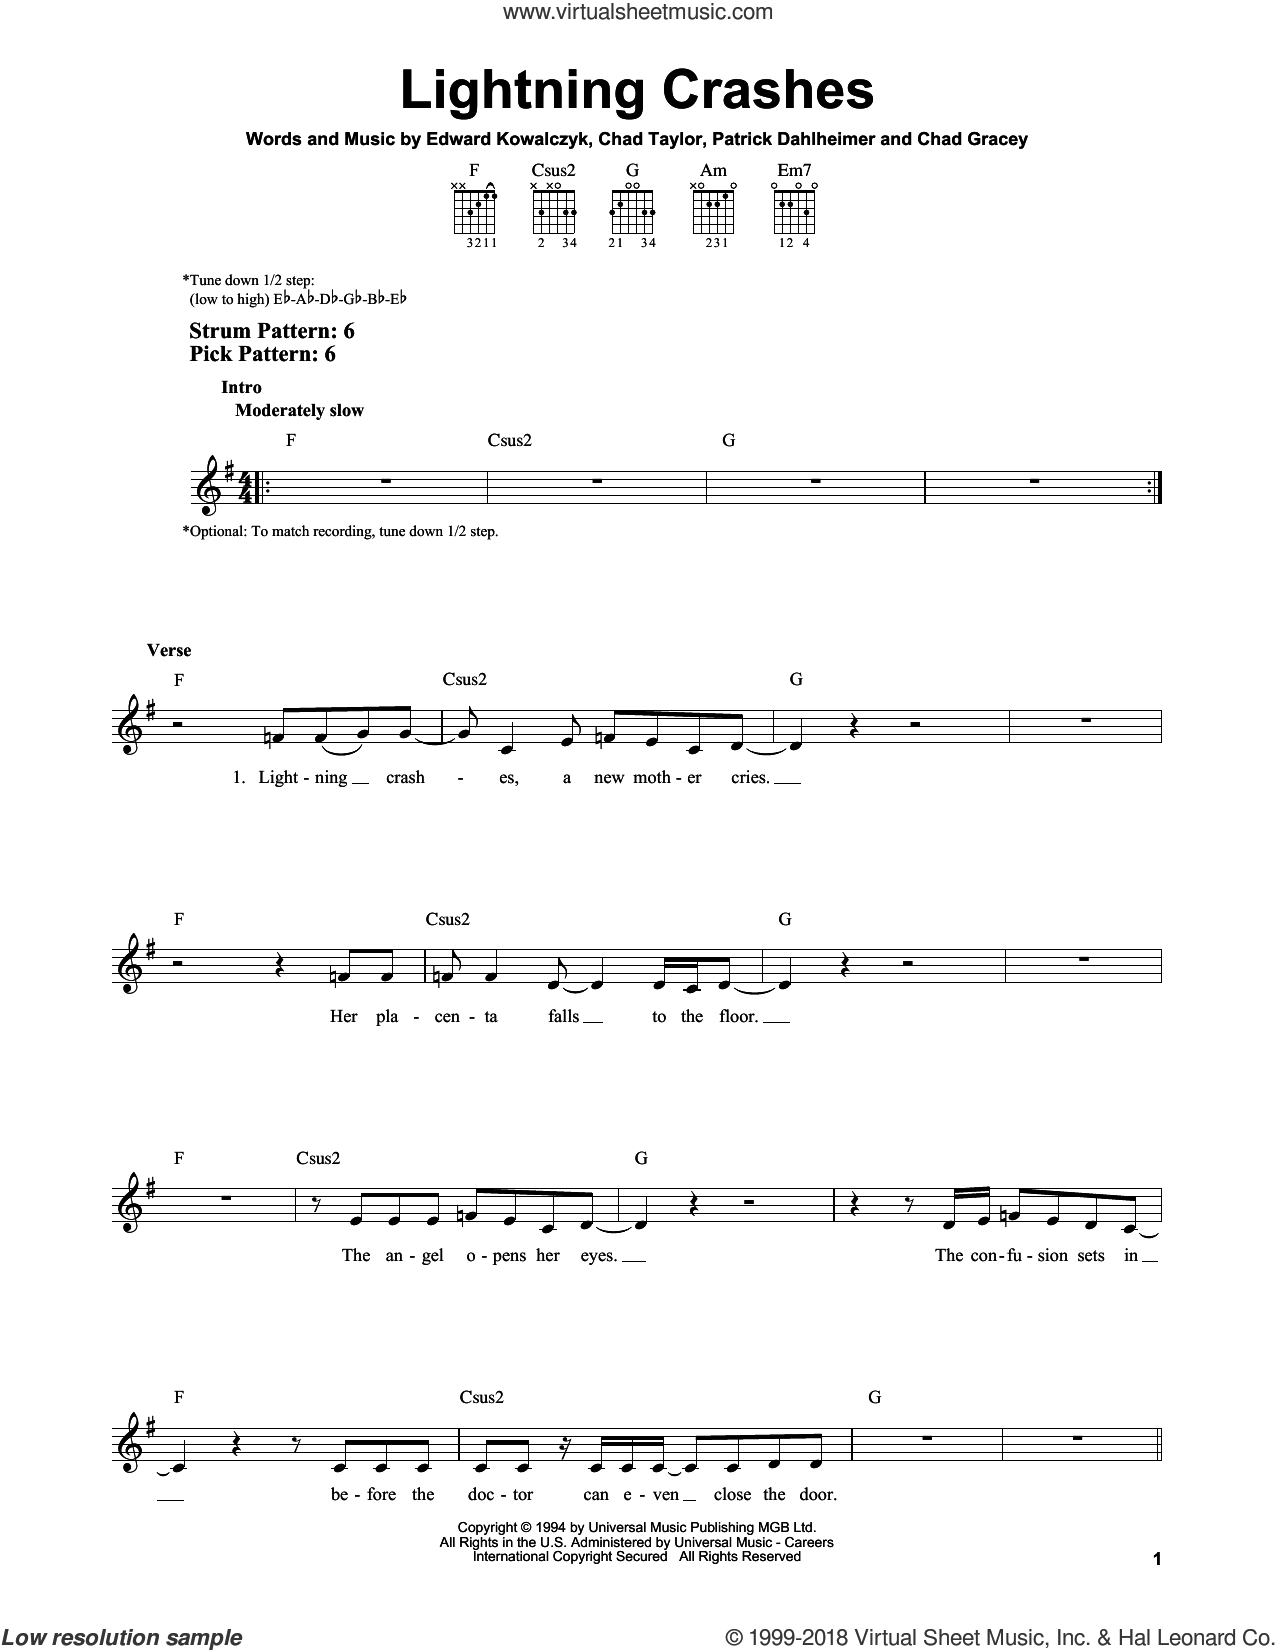 Lightning Crashes sheet music for guitar solo (chords) by Patrick Dahlheimer, Live, Chad Taylor and Edward Kowalczyk. Score Image Preview.